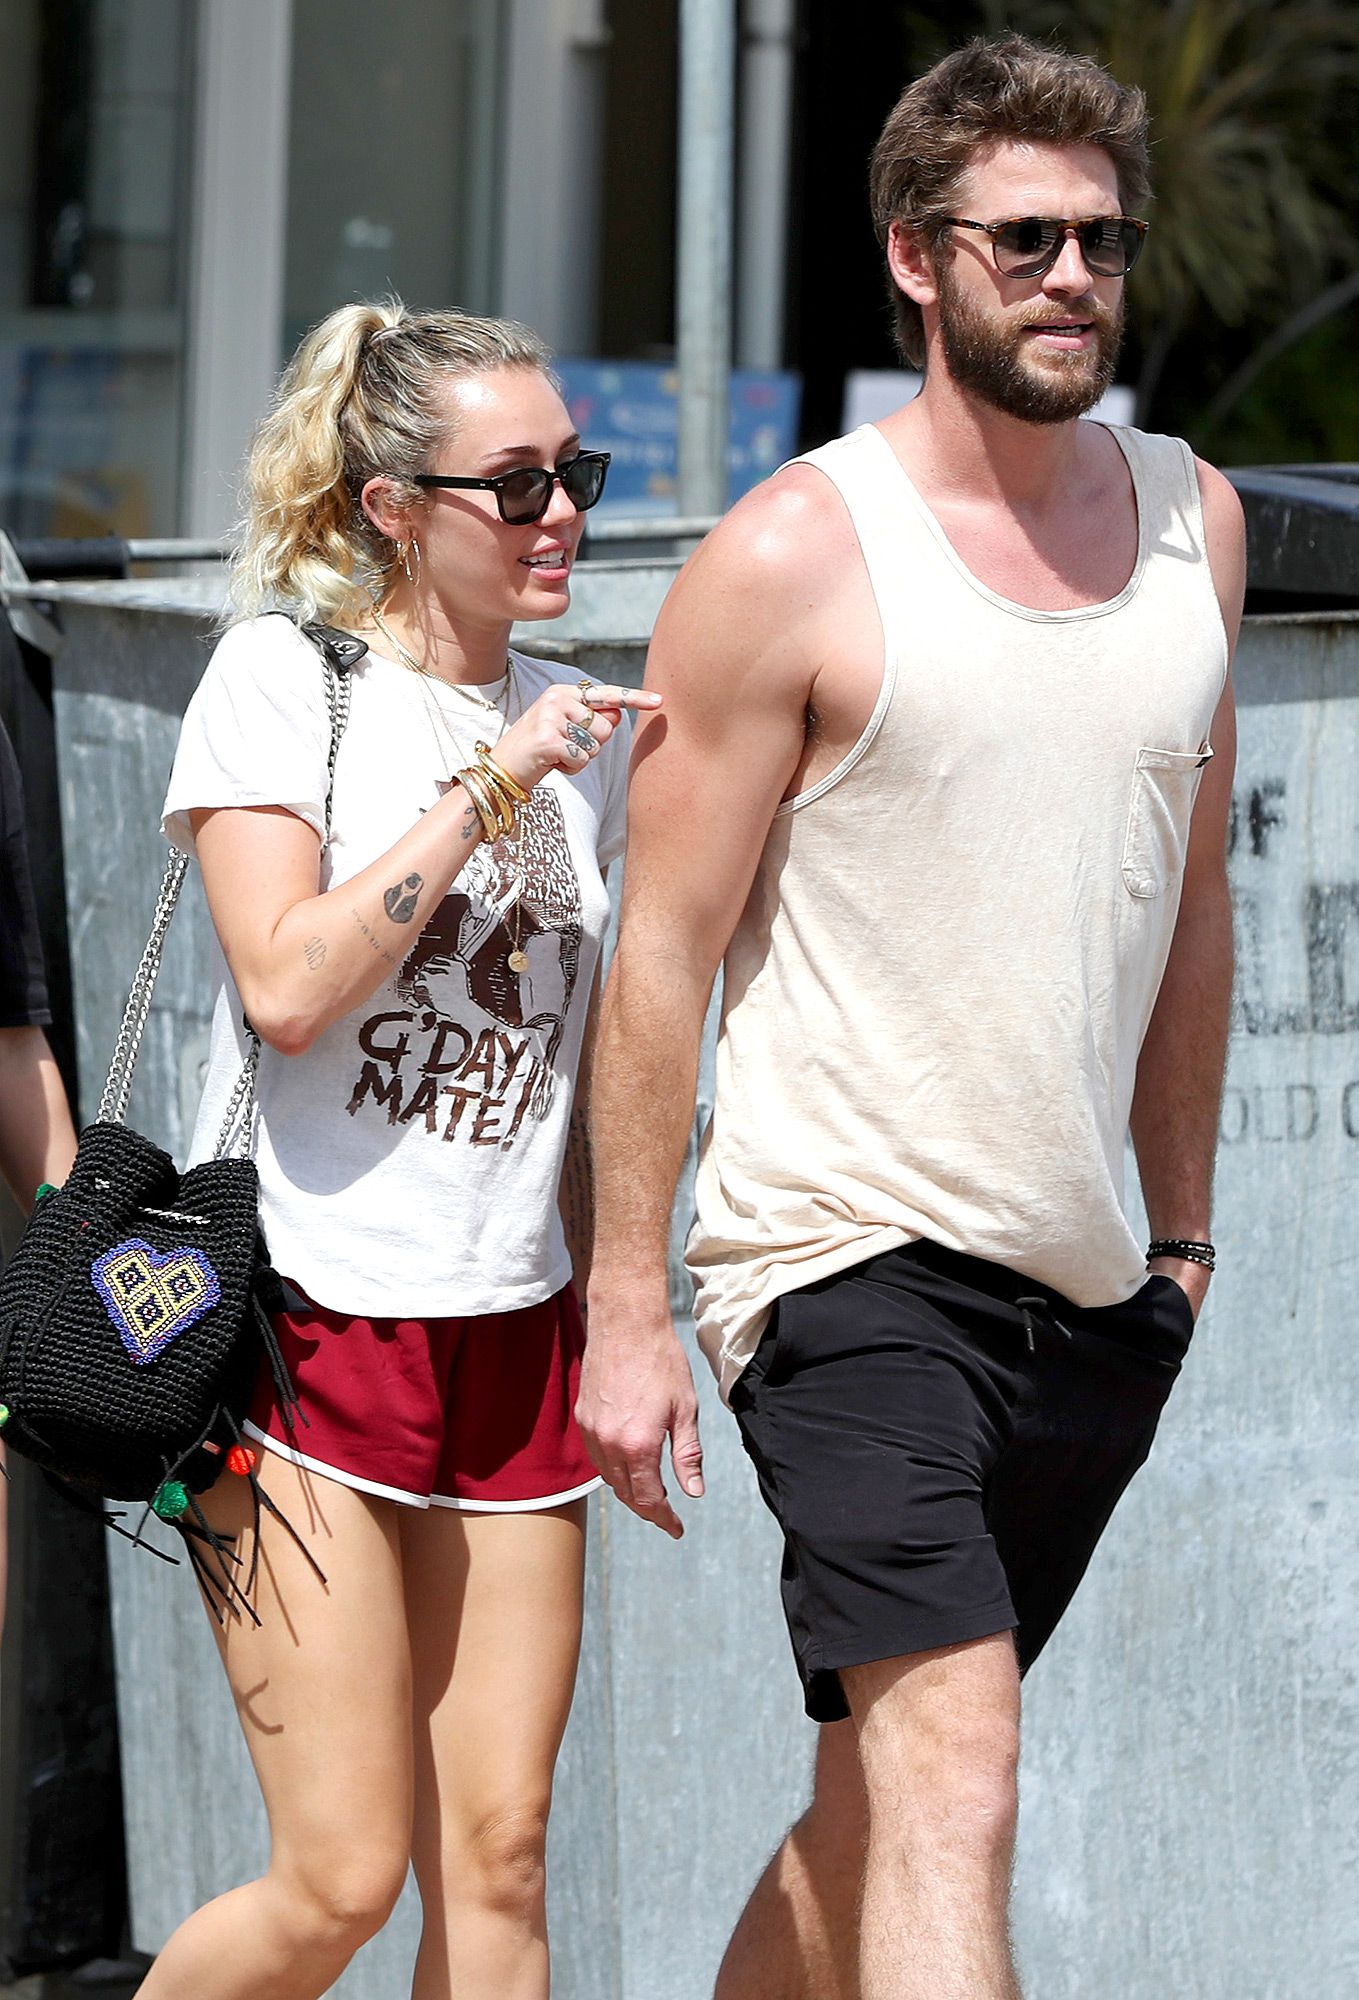 Liam Hemsworth And Miley Cyrus Sighting At Burleigh Heads - January 11, 2018